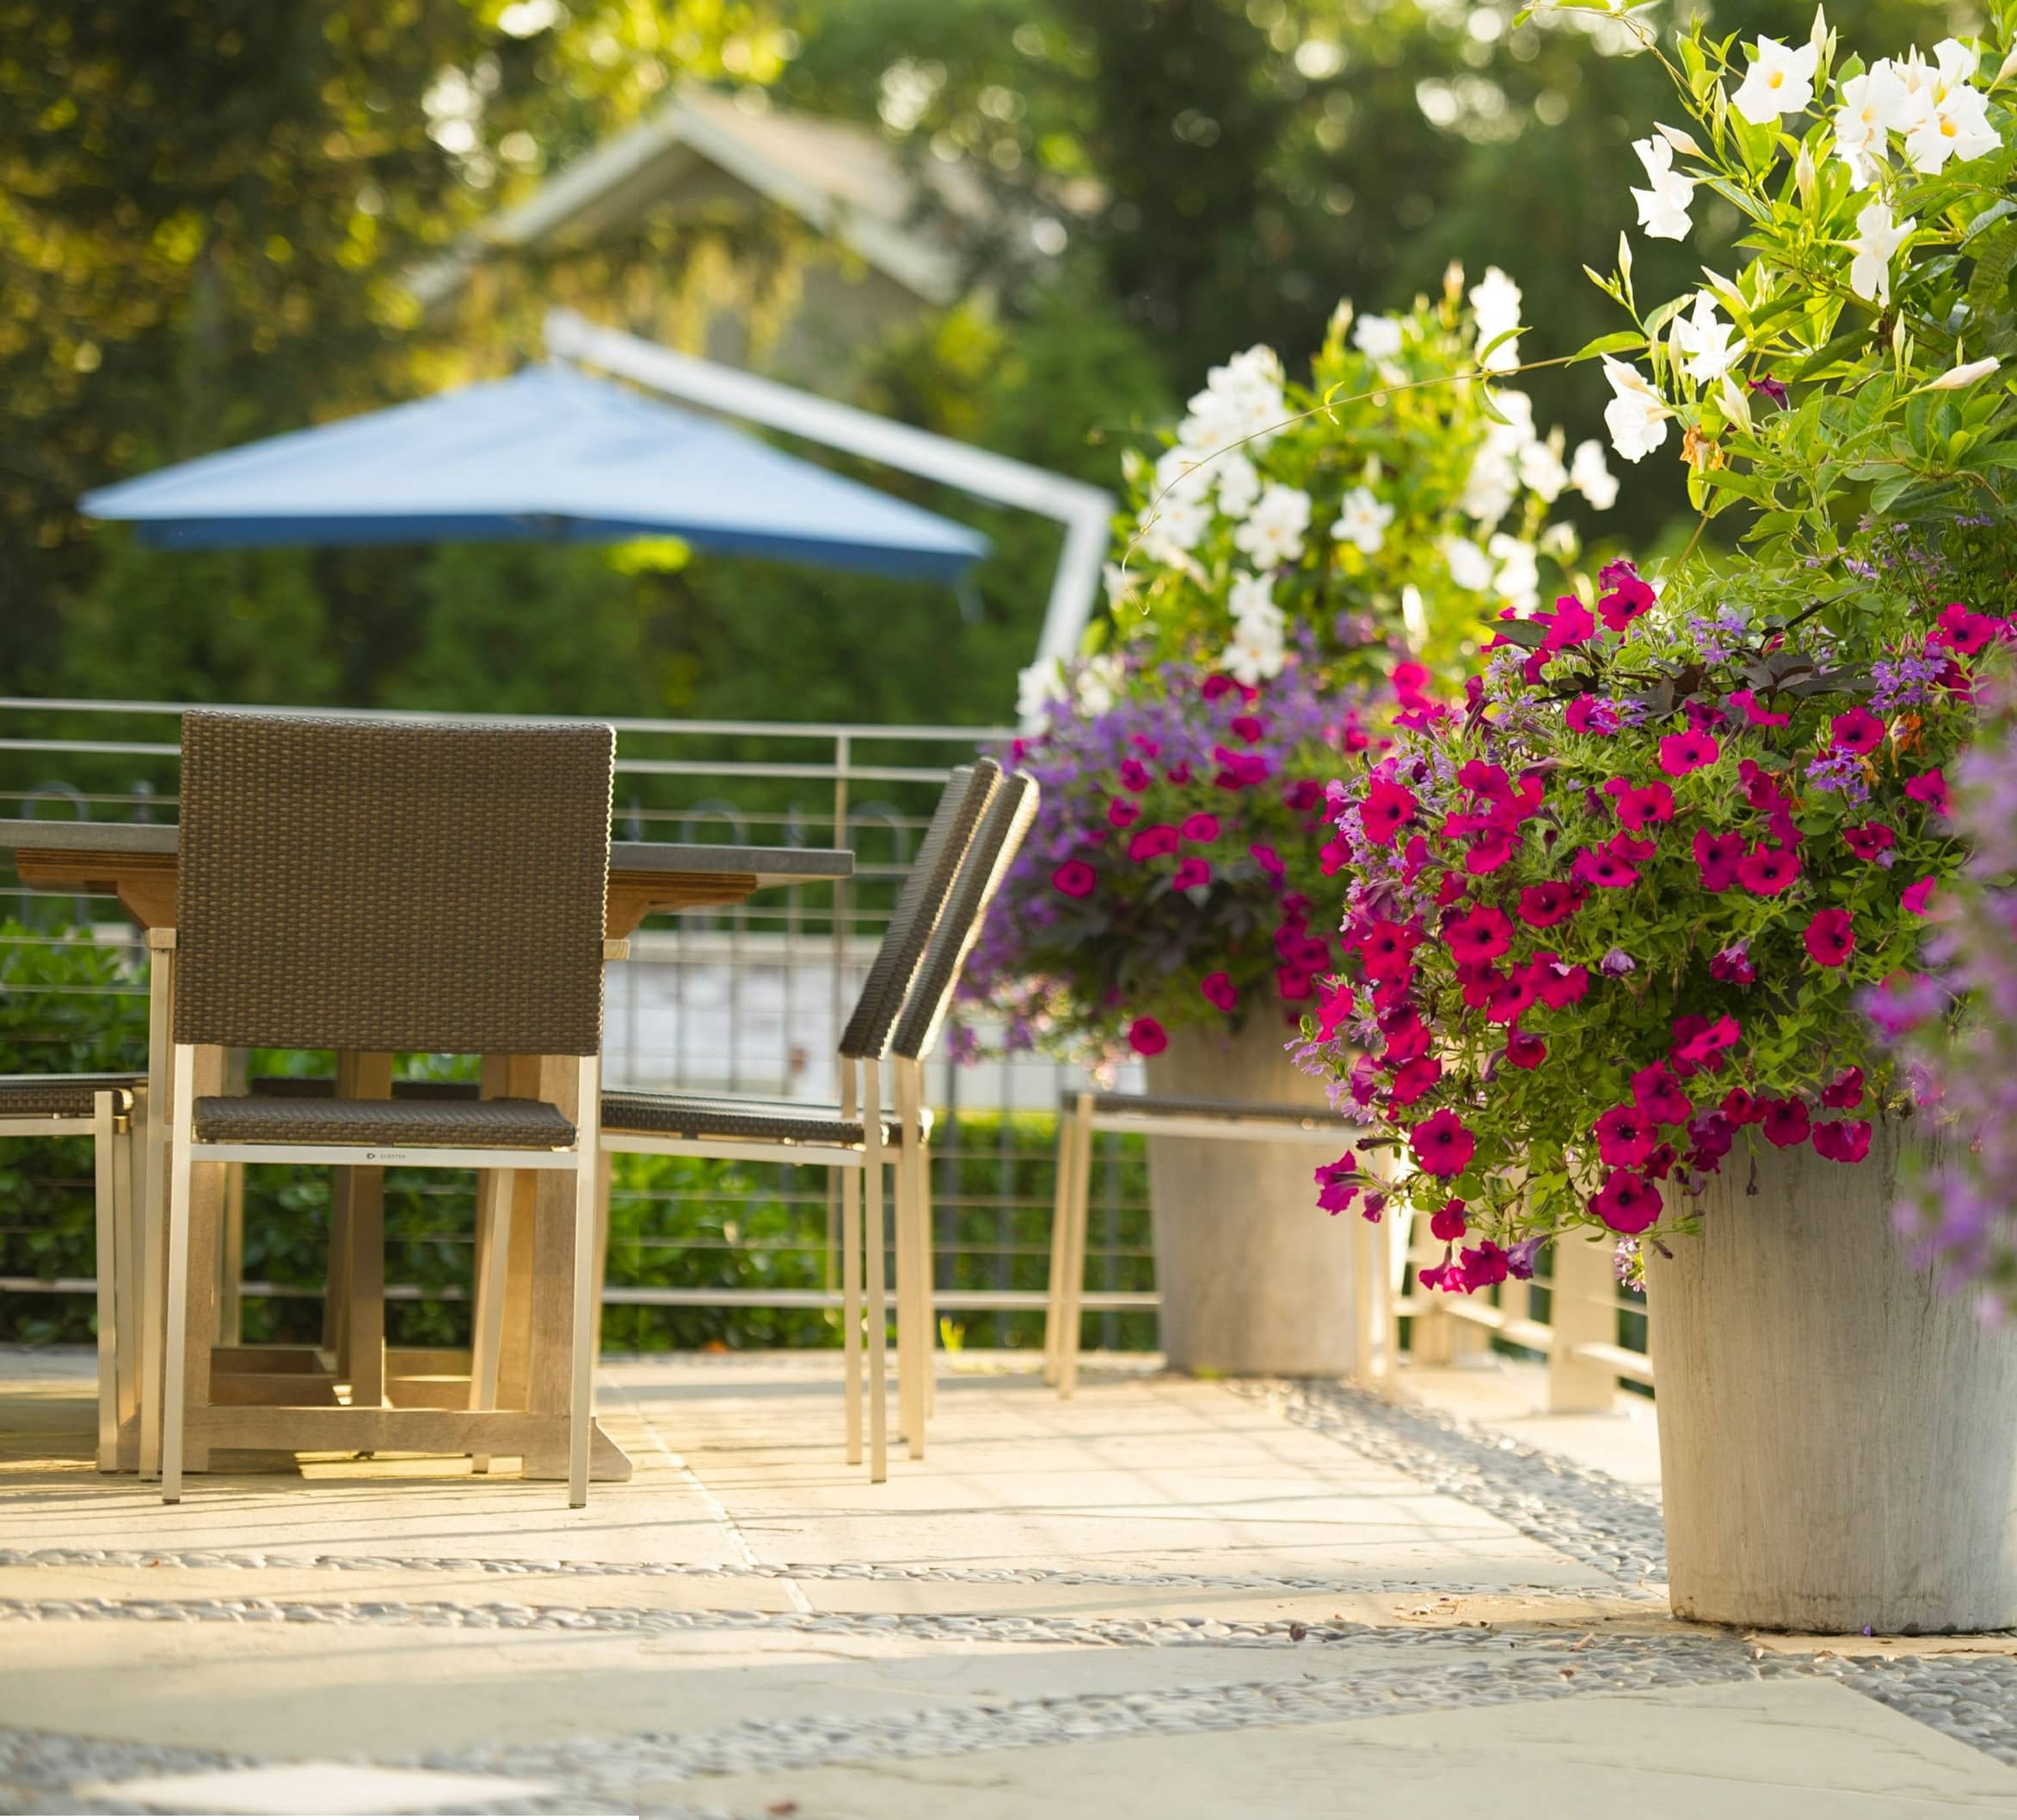 MAKING THE MOST OF YOUR OUTDOOR SPACE, NO MATTER HOW SMALL